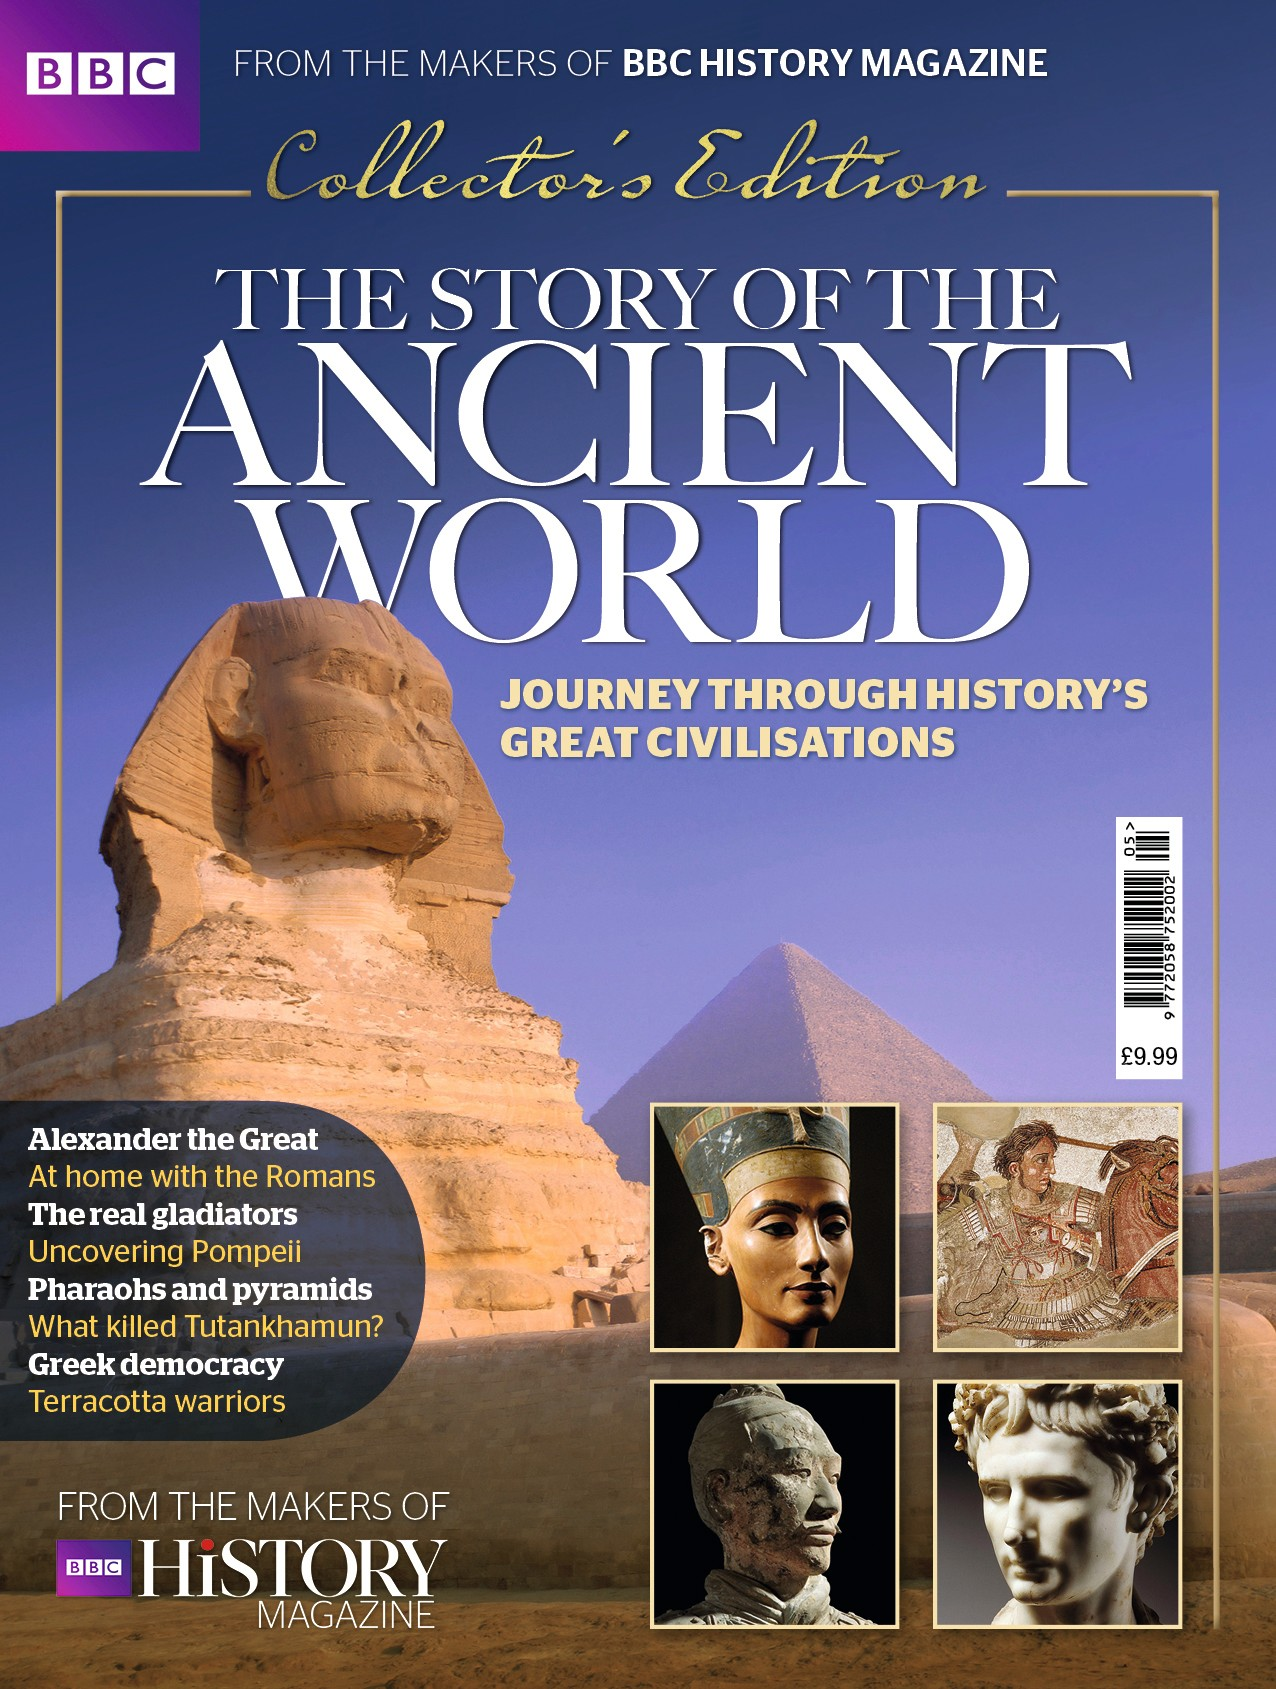 The Story of the Ancient World.